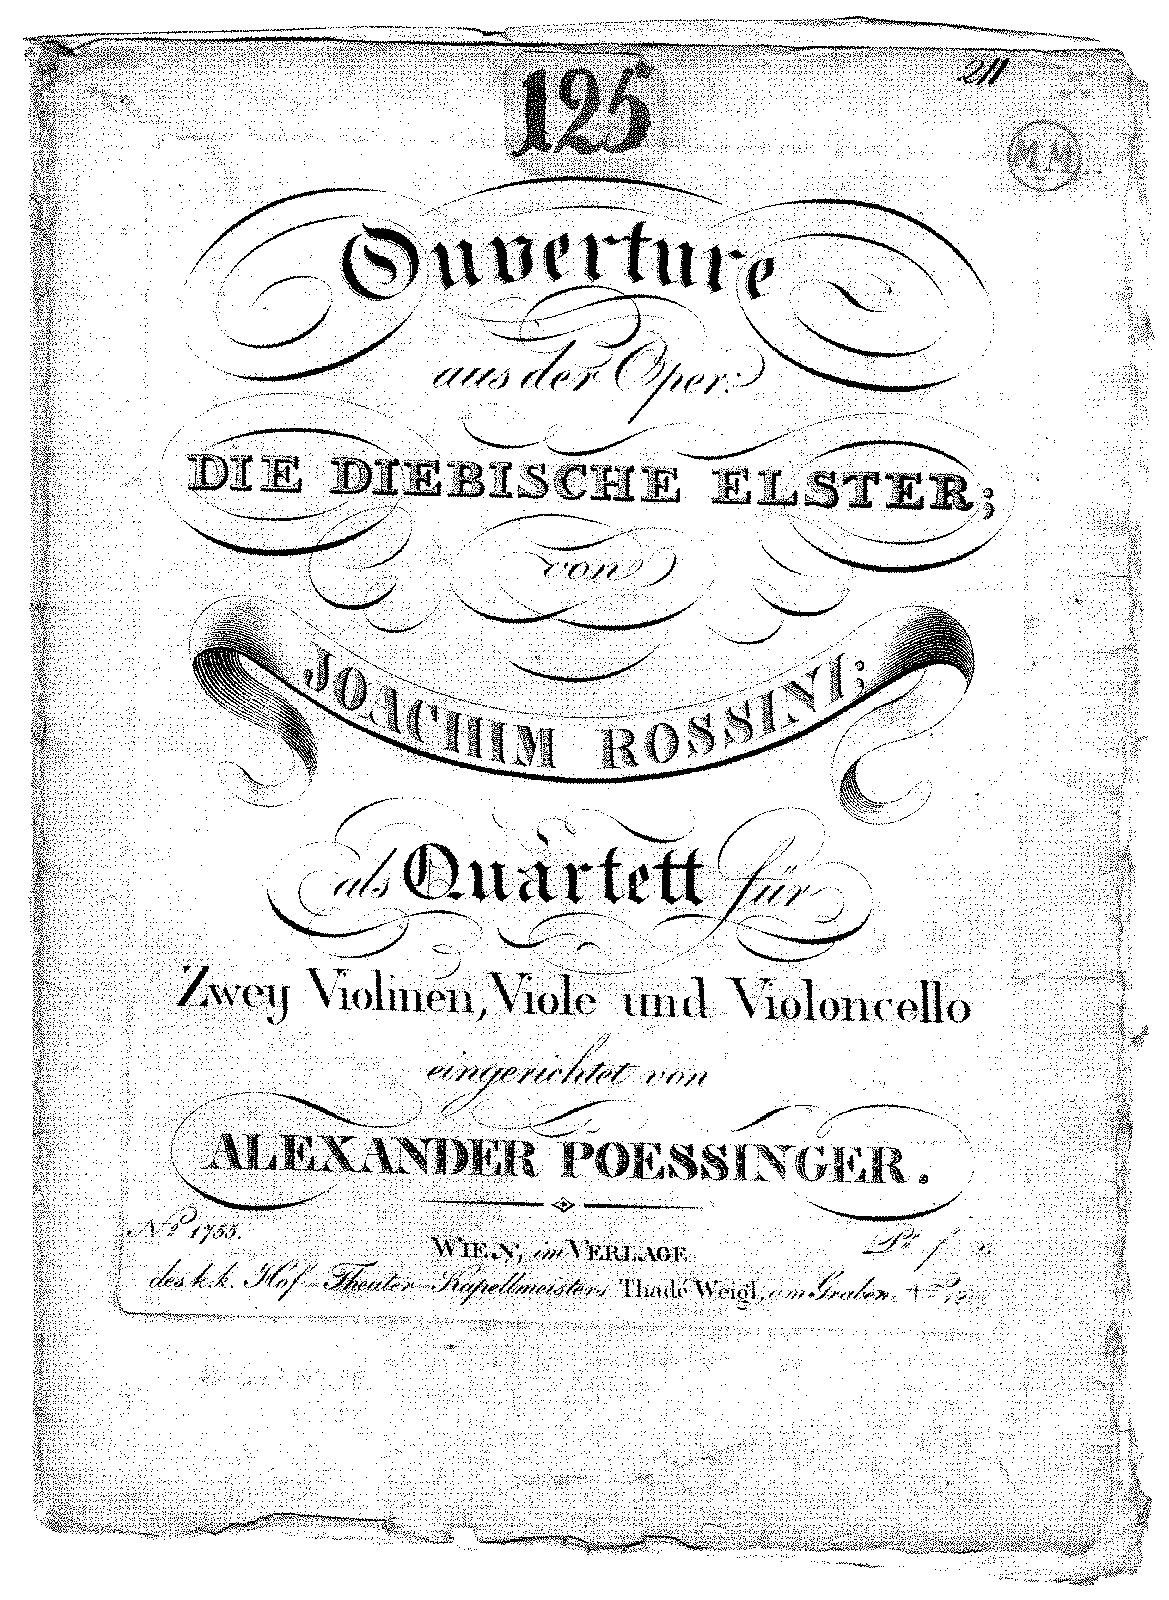 PMLP18921-rossini gazza2.pdf